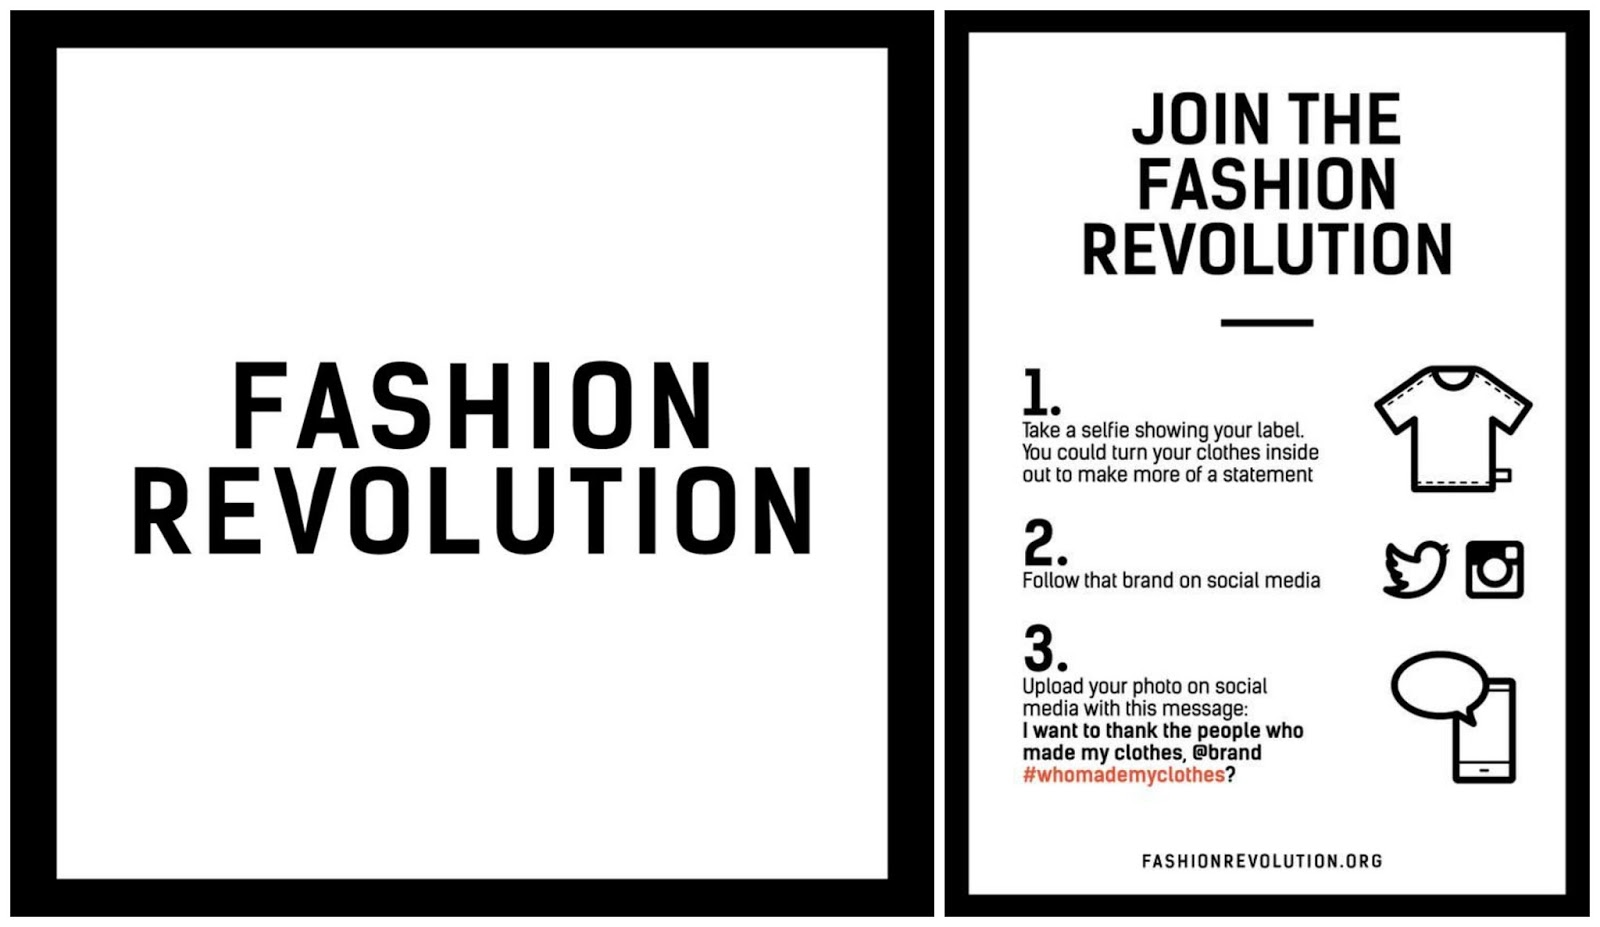 Sunday 24th April Is Fashion Revolution Day